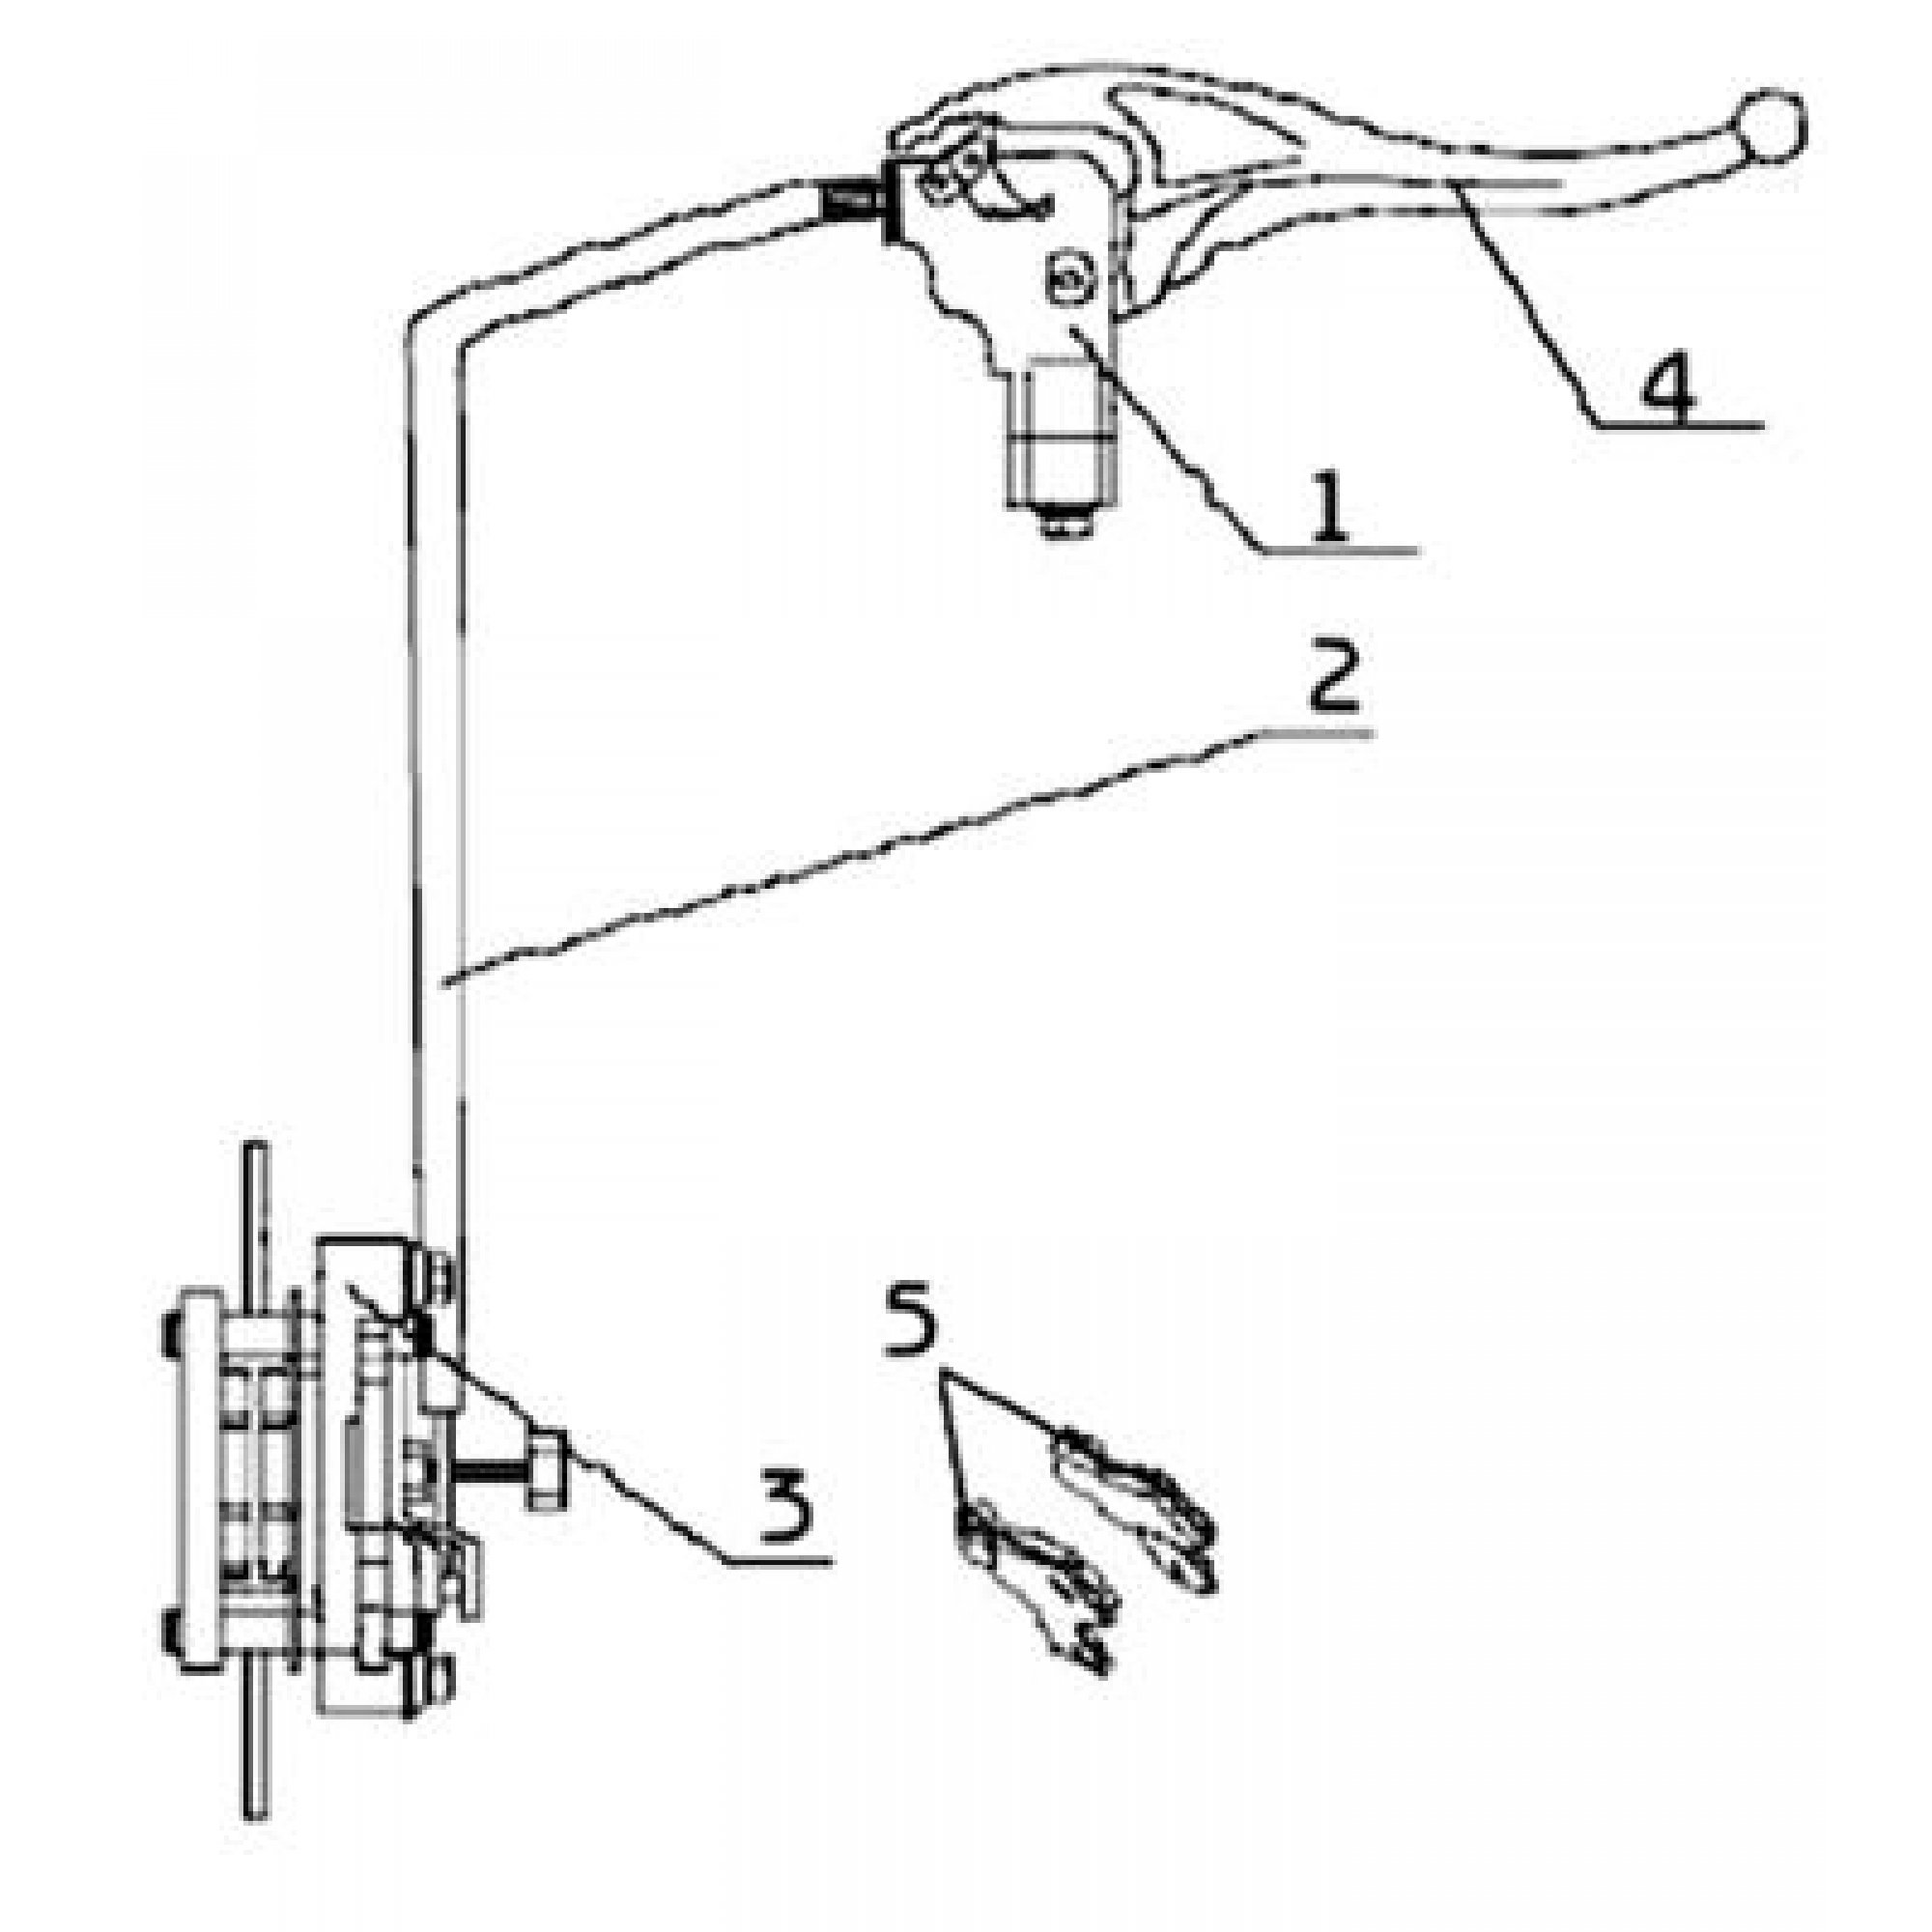 BRAKING SYSTEM OF THE PARKING BRAKE